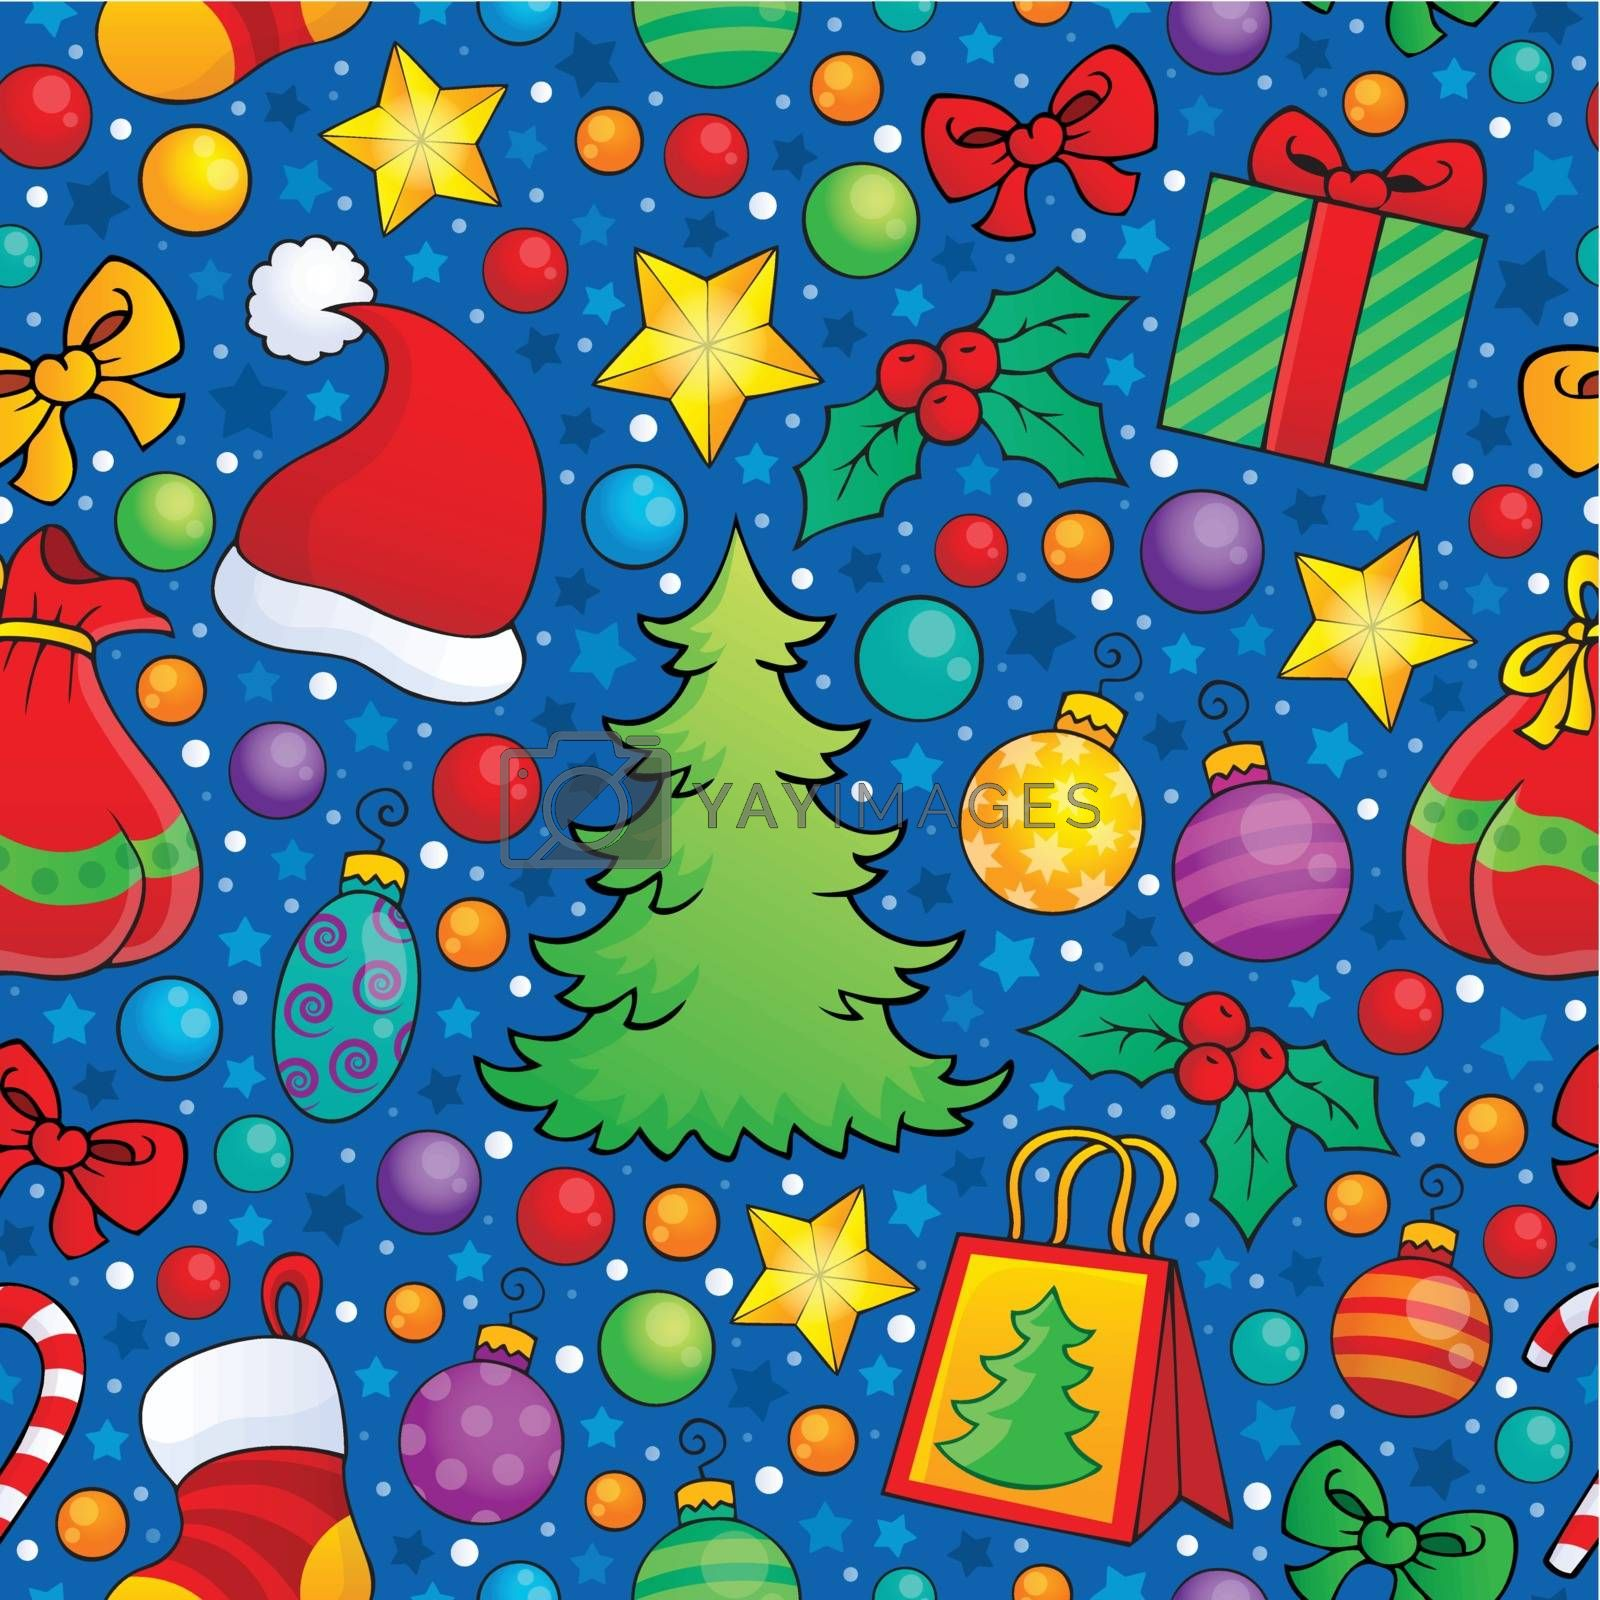 Christmas seamless background 3 - eps10 vector illustration.